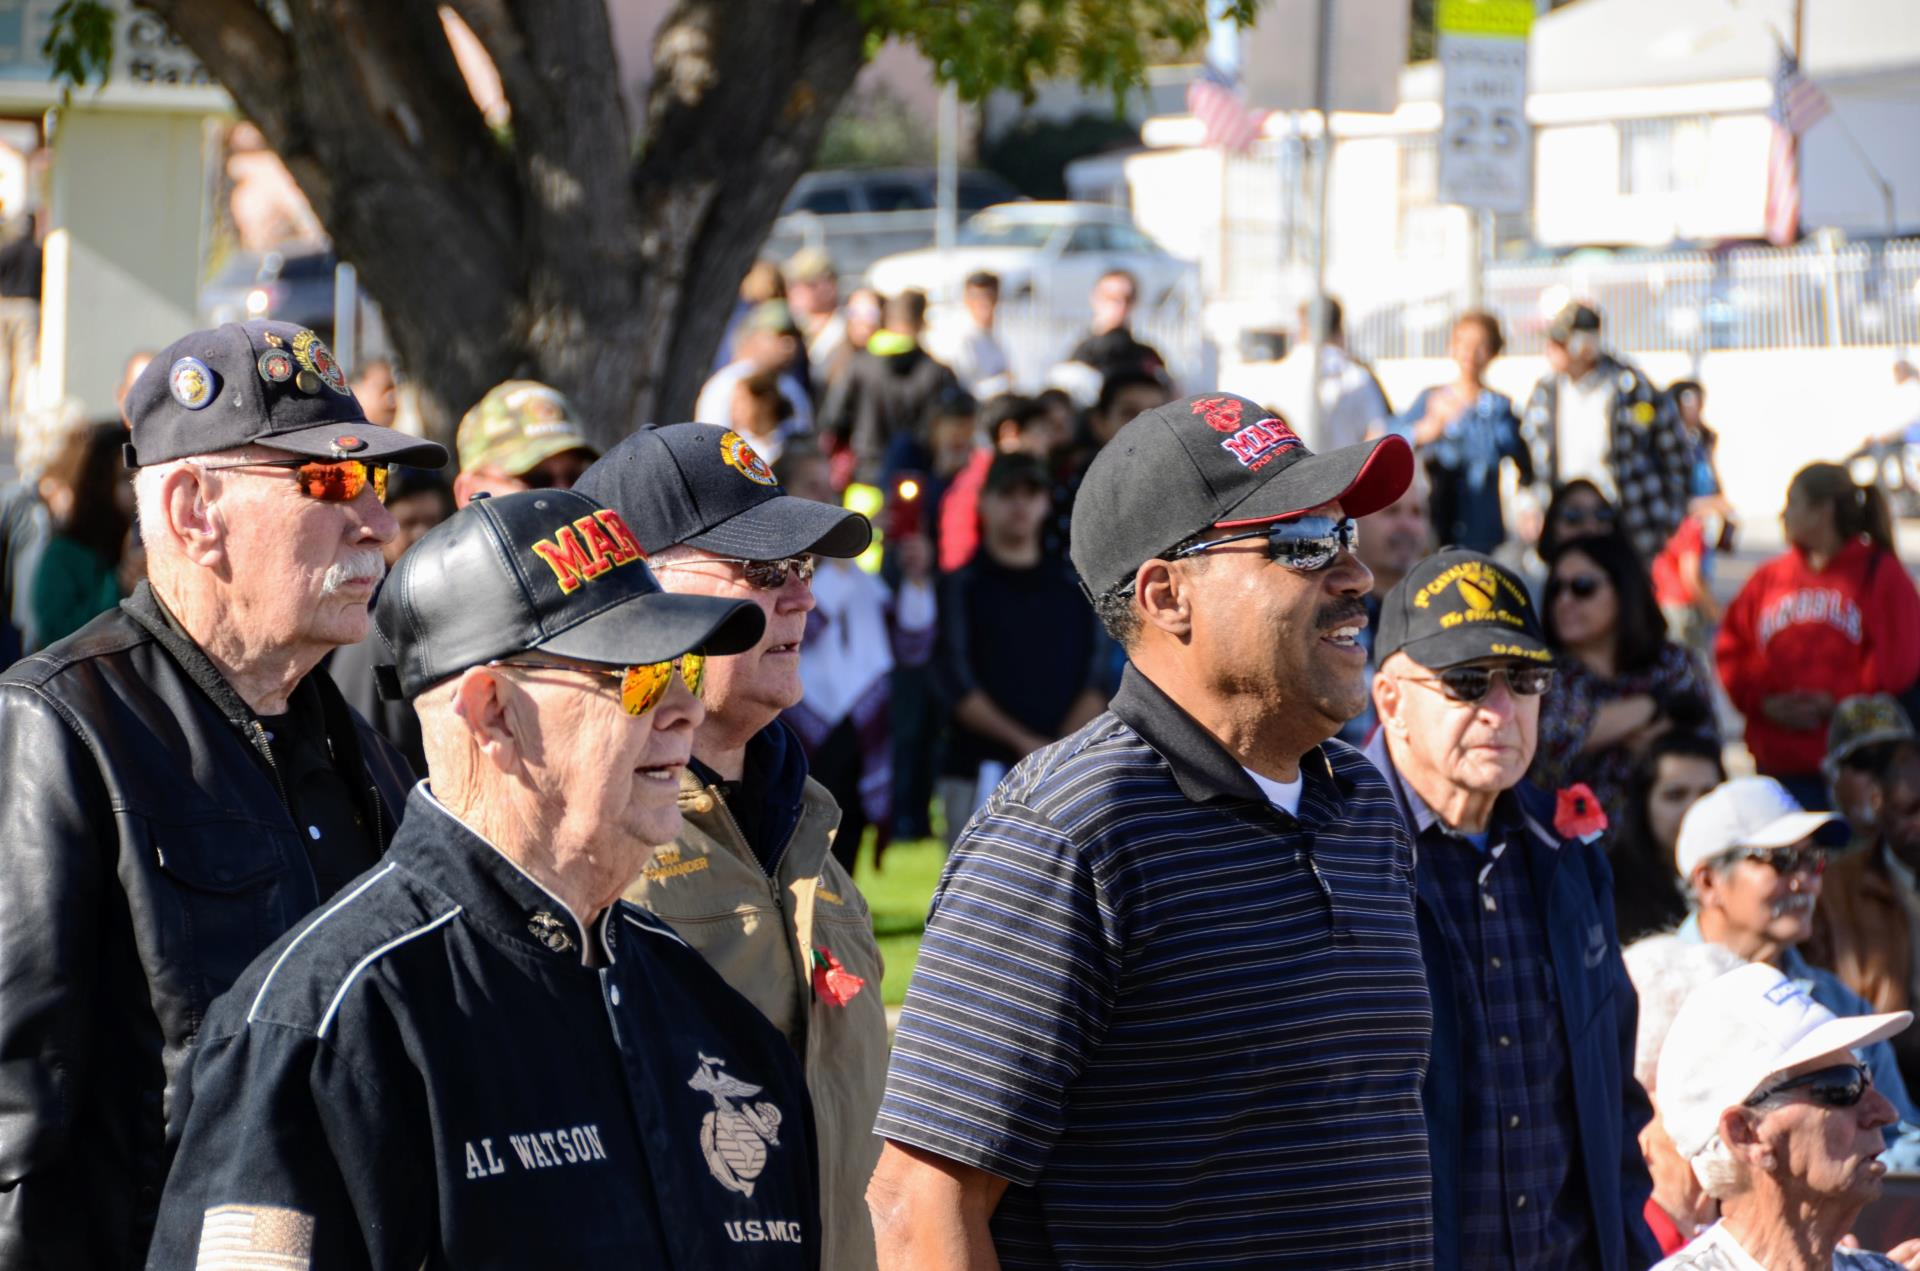 We're Seeking Participants for our Veterans Day Parade & Ceremony